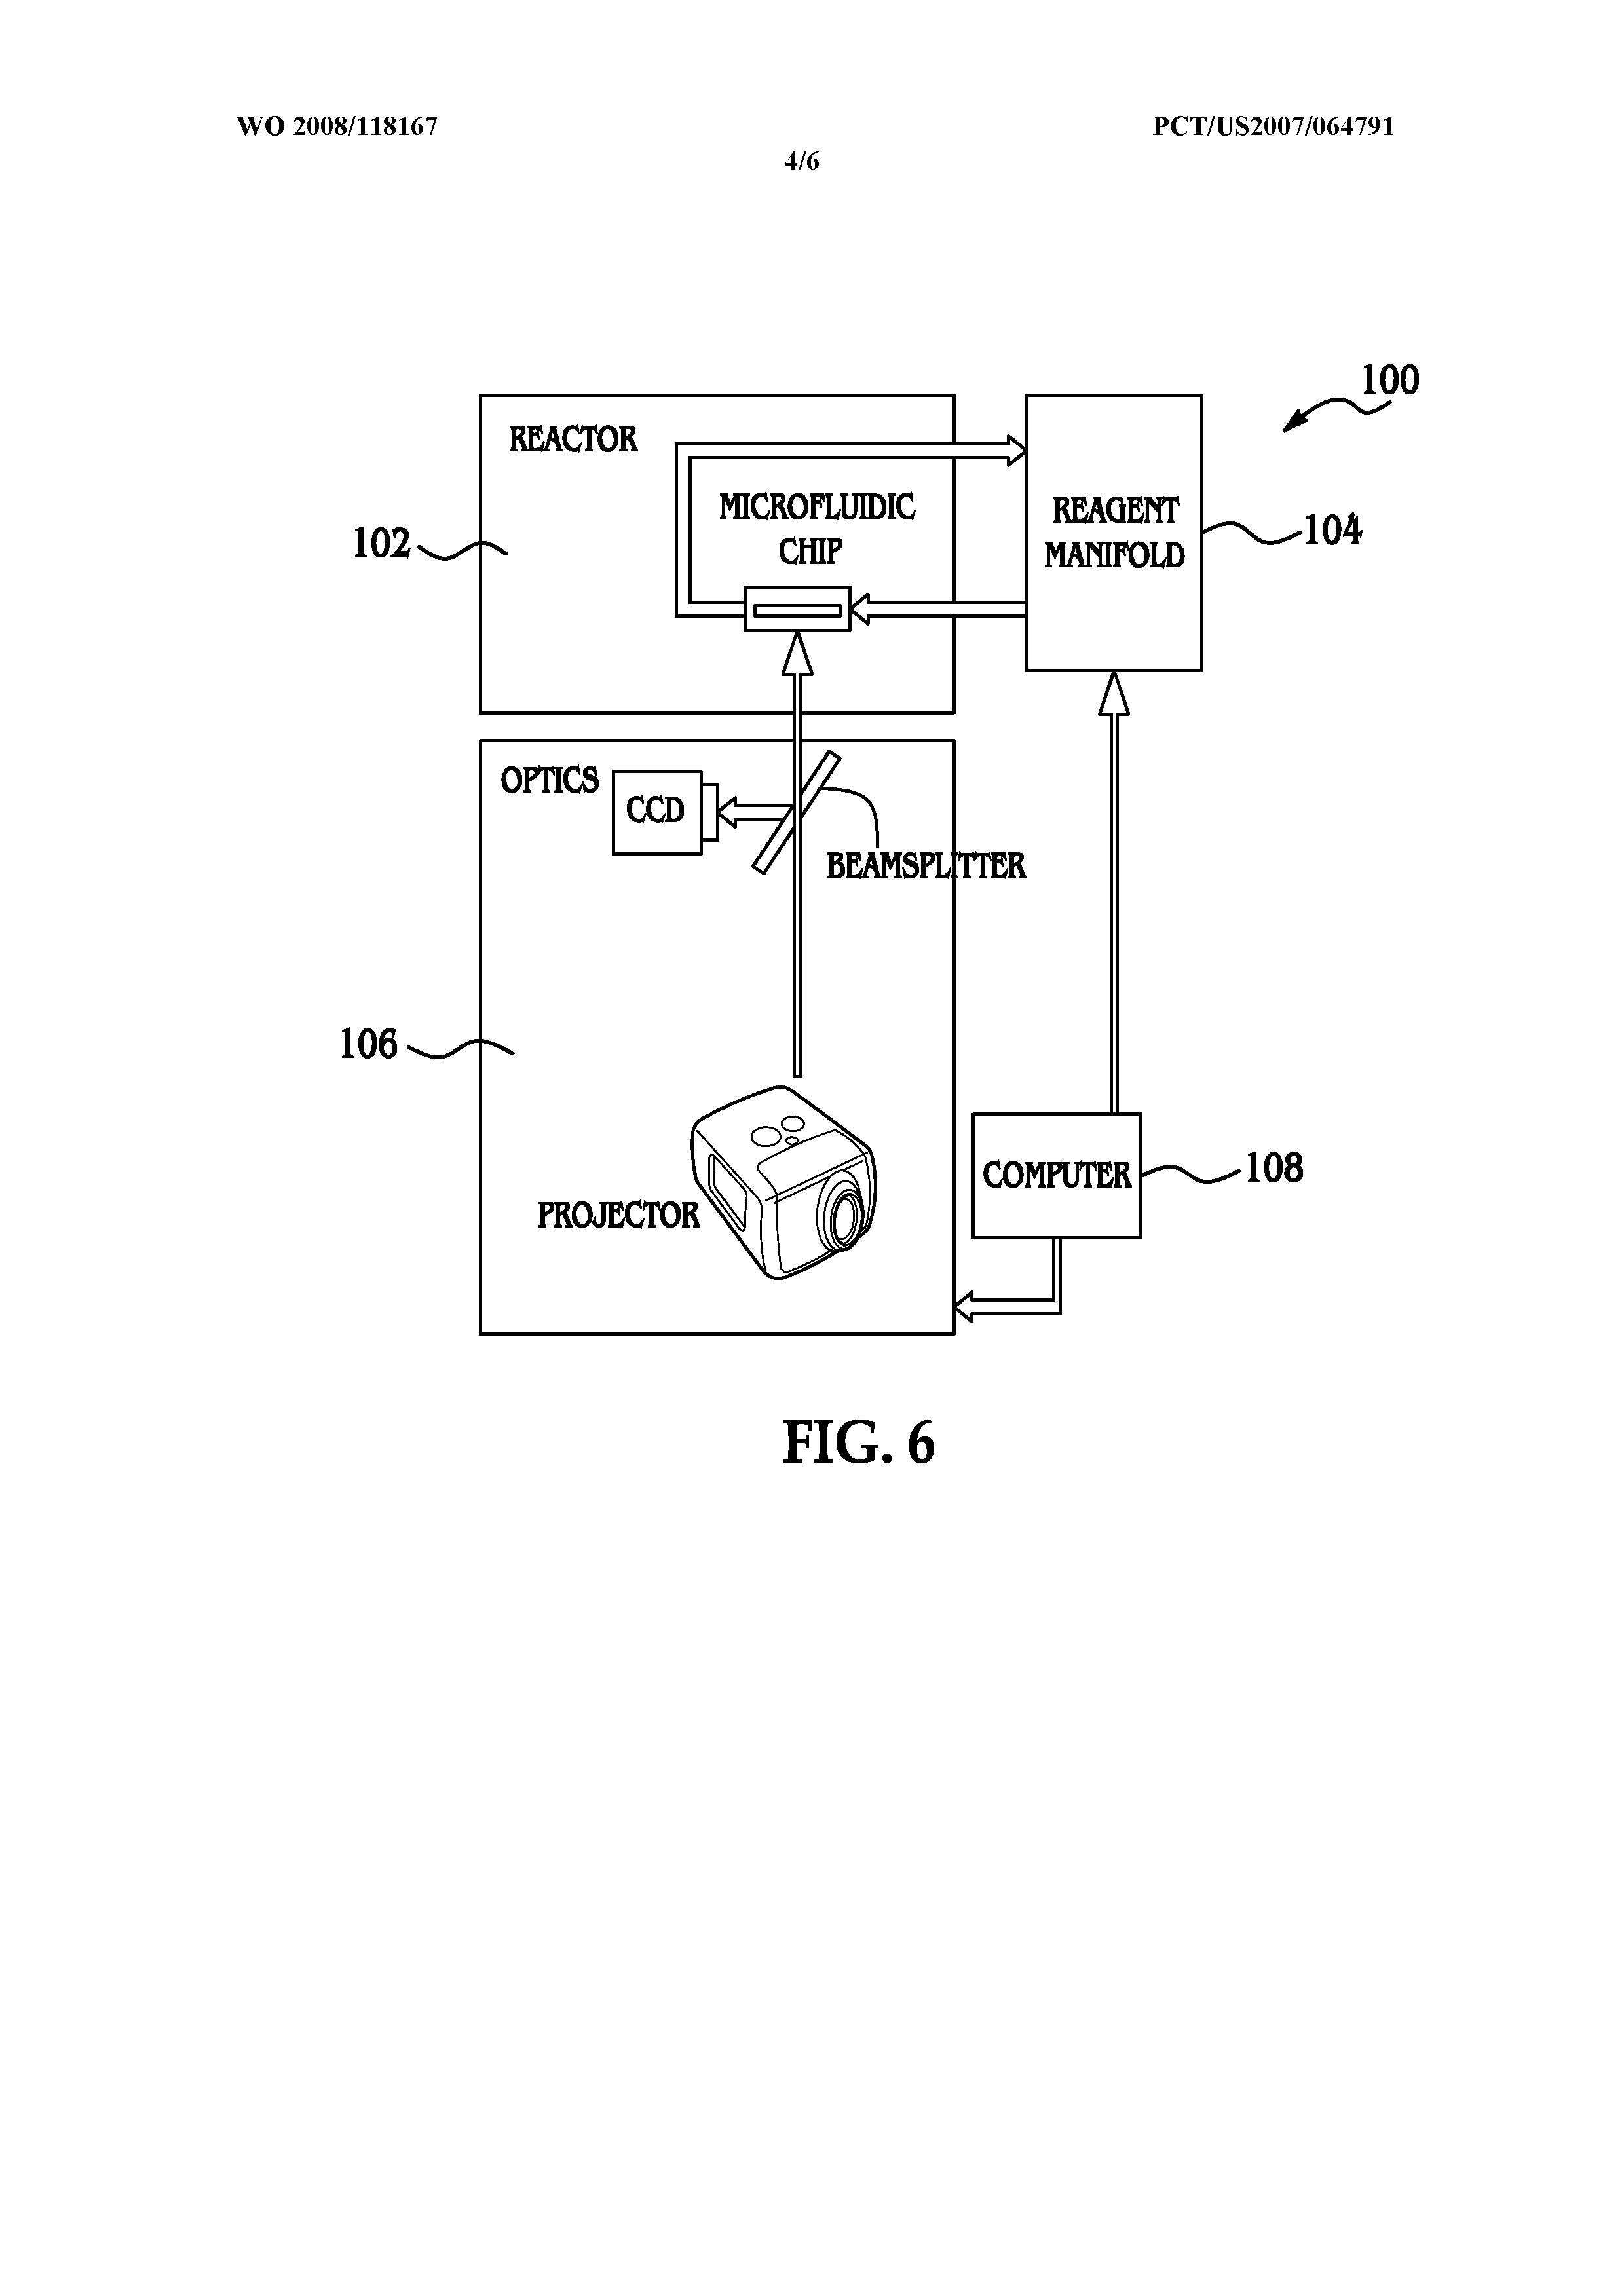 WO 2008/118167 A1 - Method For Forming Molecular Sequences